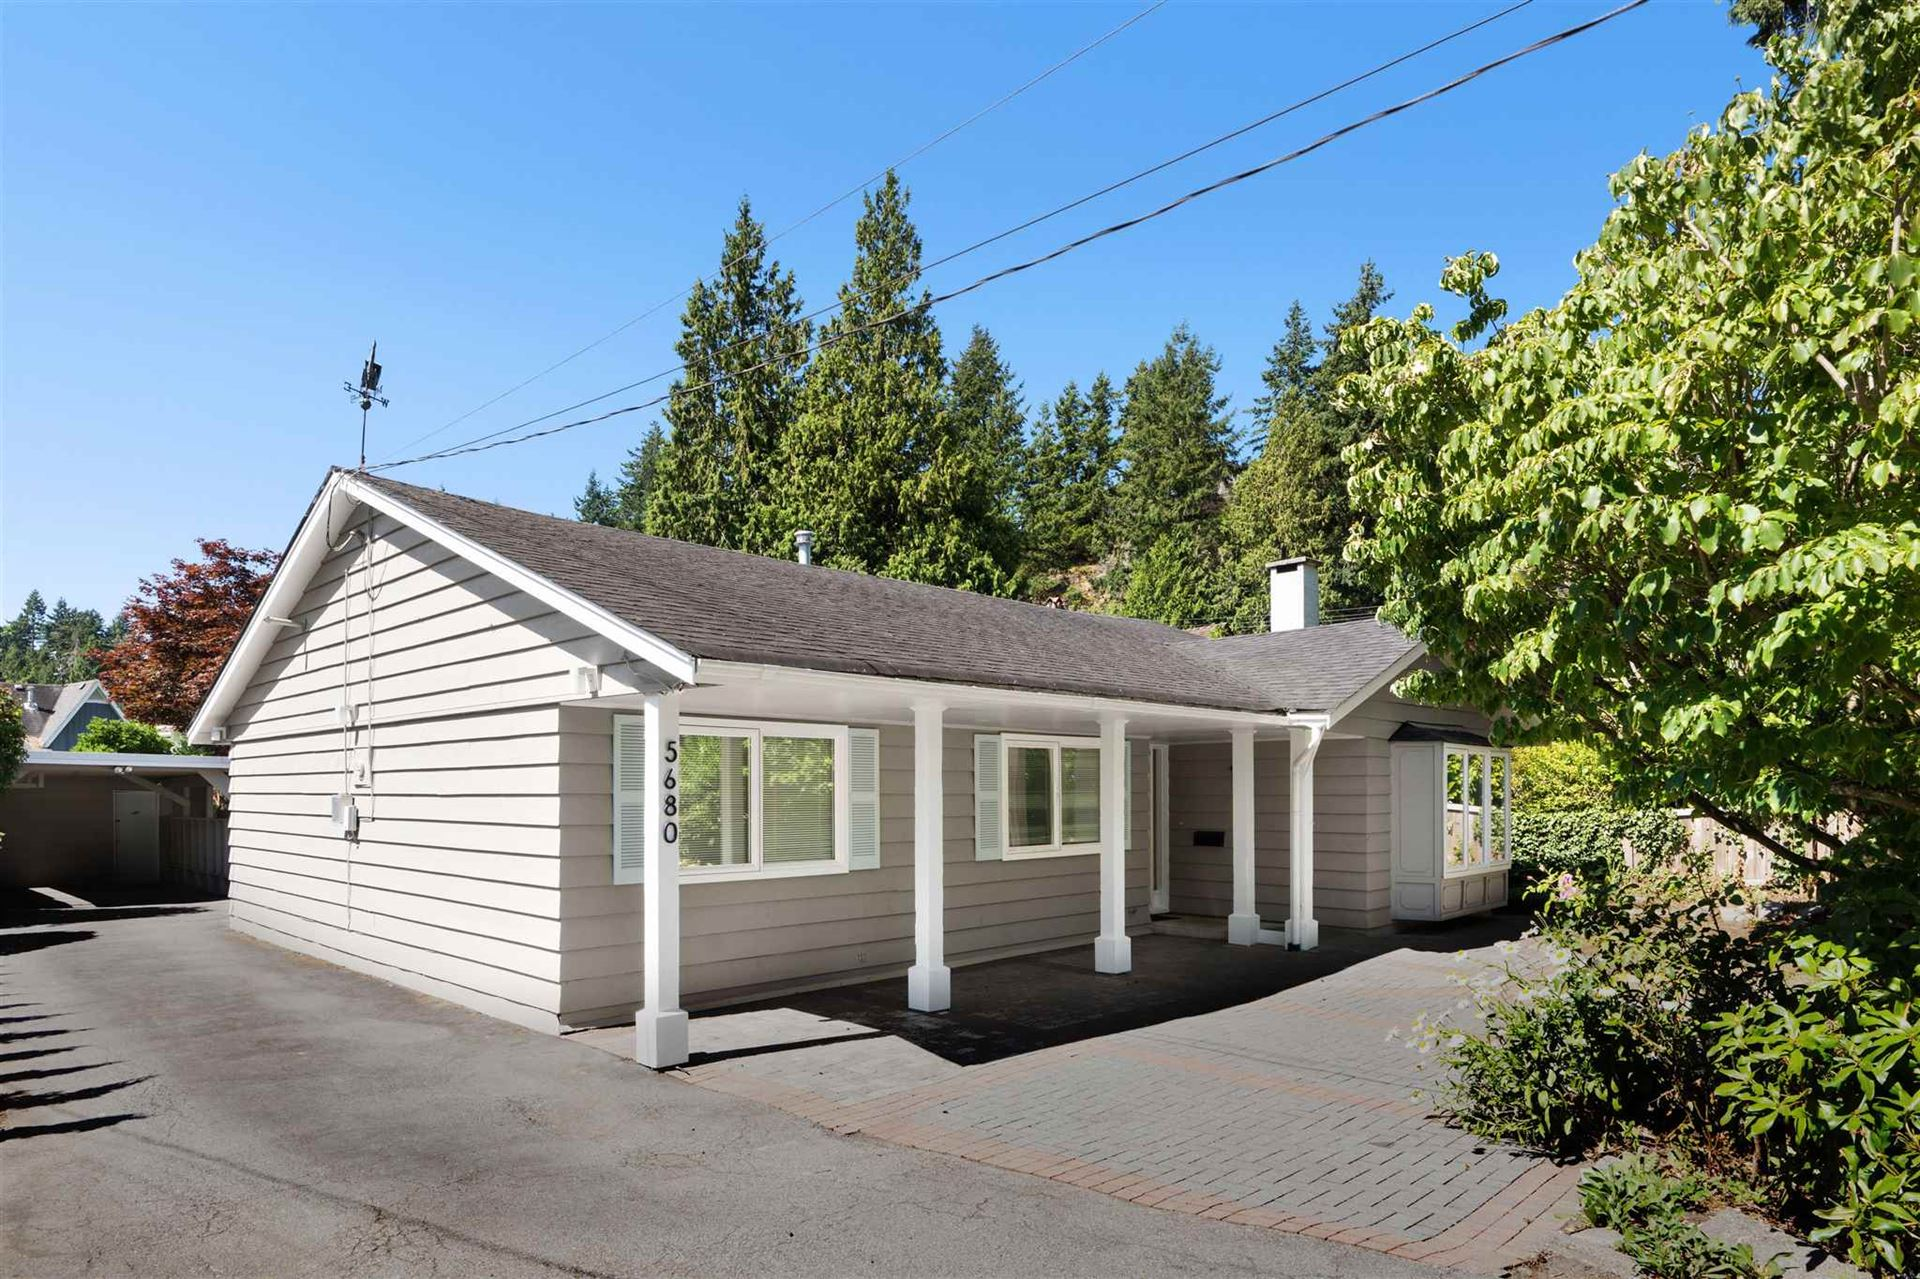 Photo of 5680 MARINE DRIVE, West Vancouver, BC V7W 2R6 (MLS # R2604573)